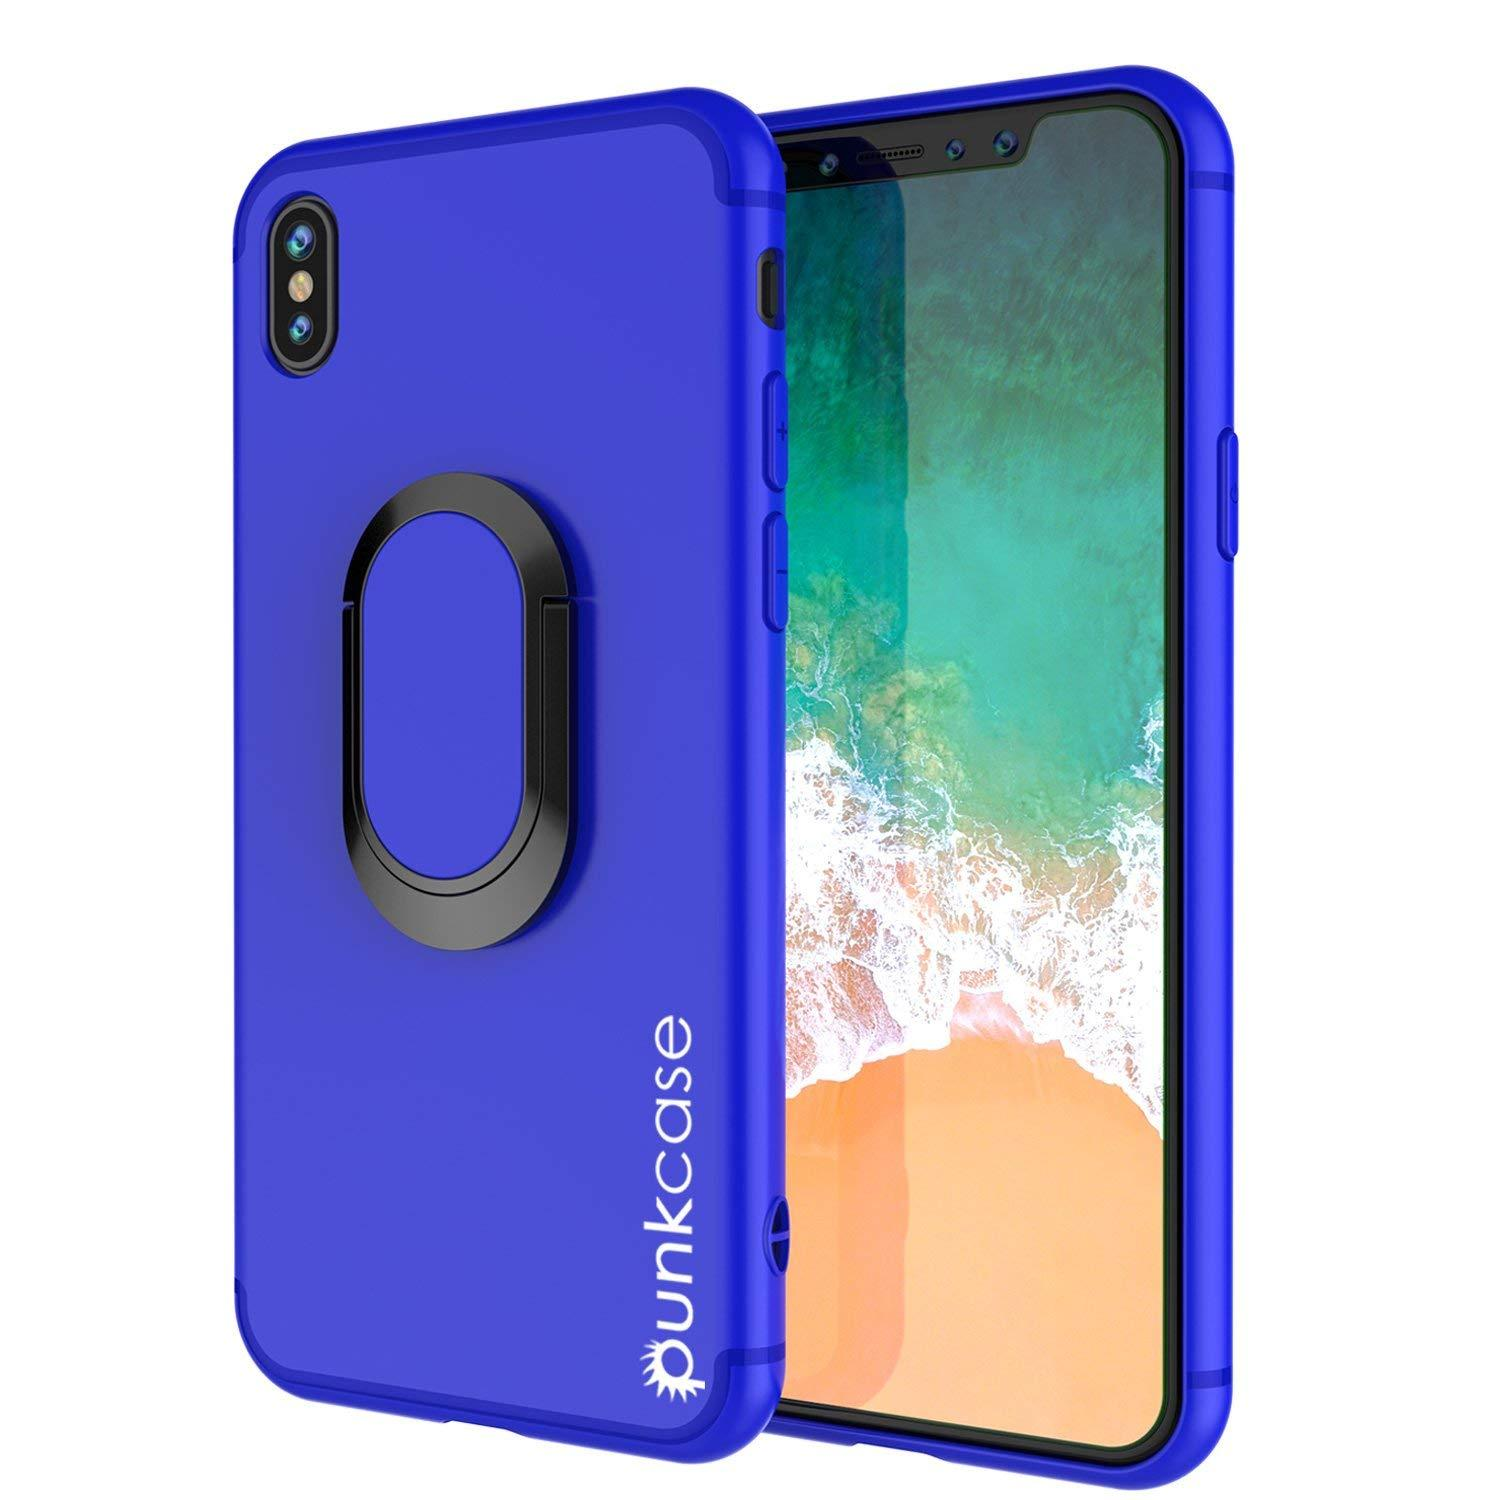 iPhone XR Case, Punkcase Magnetix Protective TPU Cover W/ Kickstand, Tempered Glass Screen Protector [Blue]